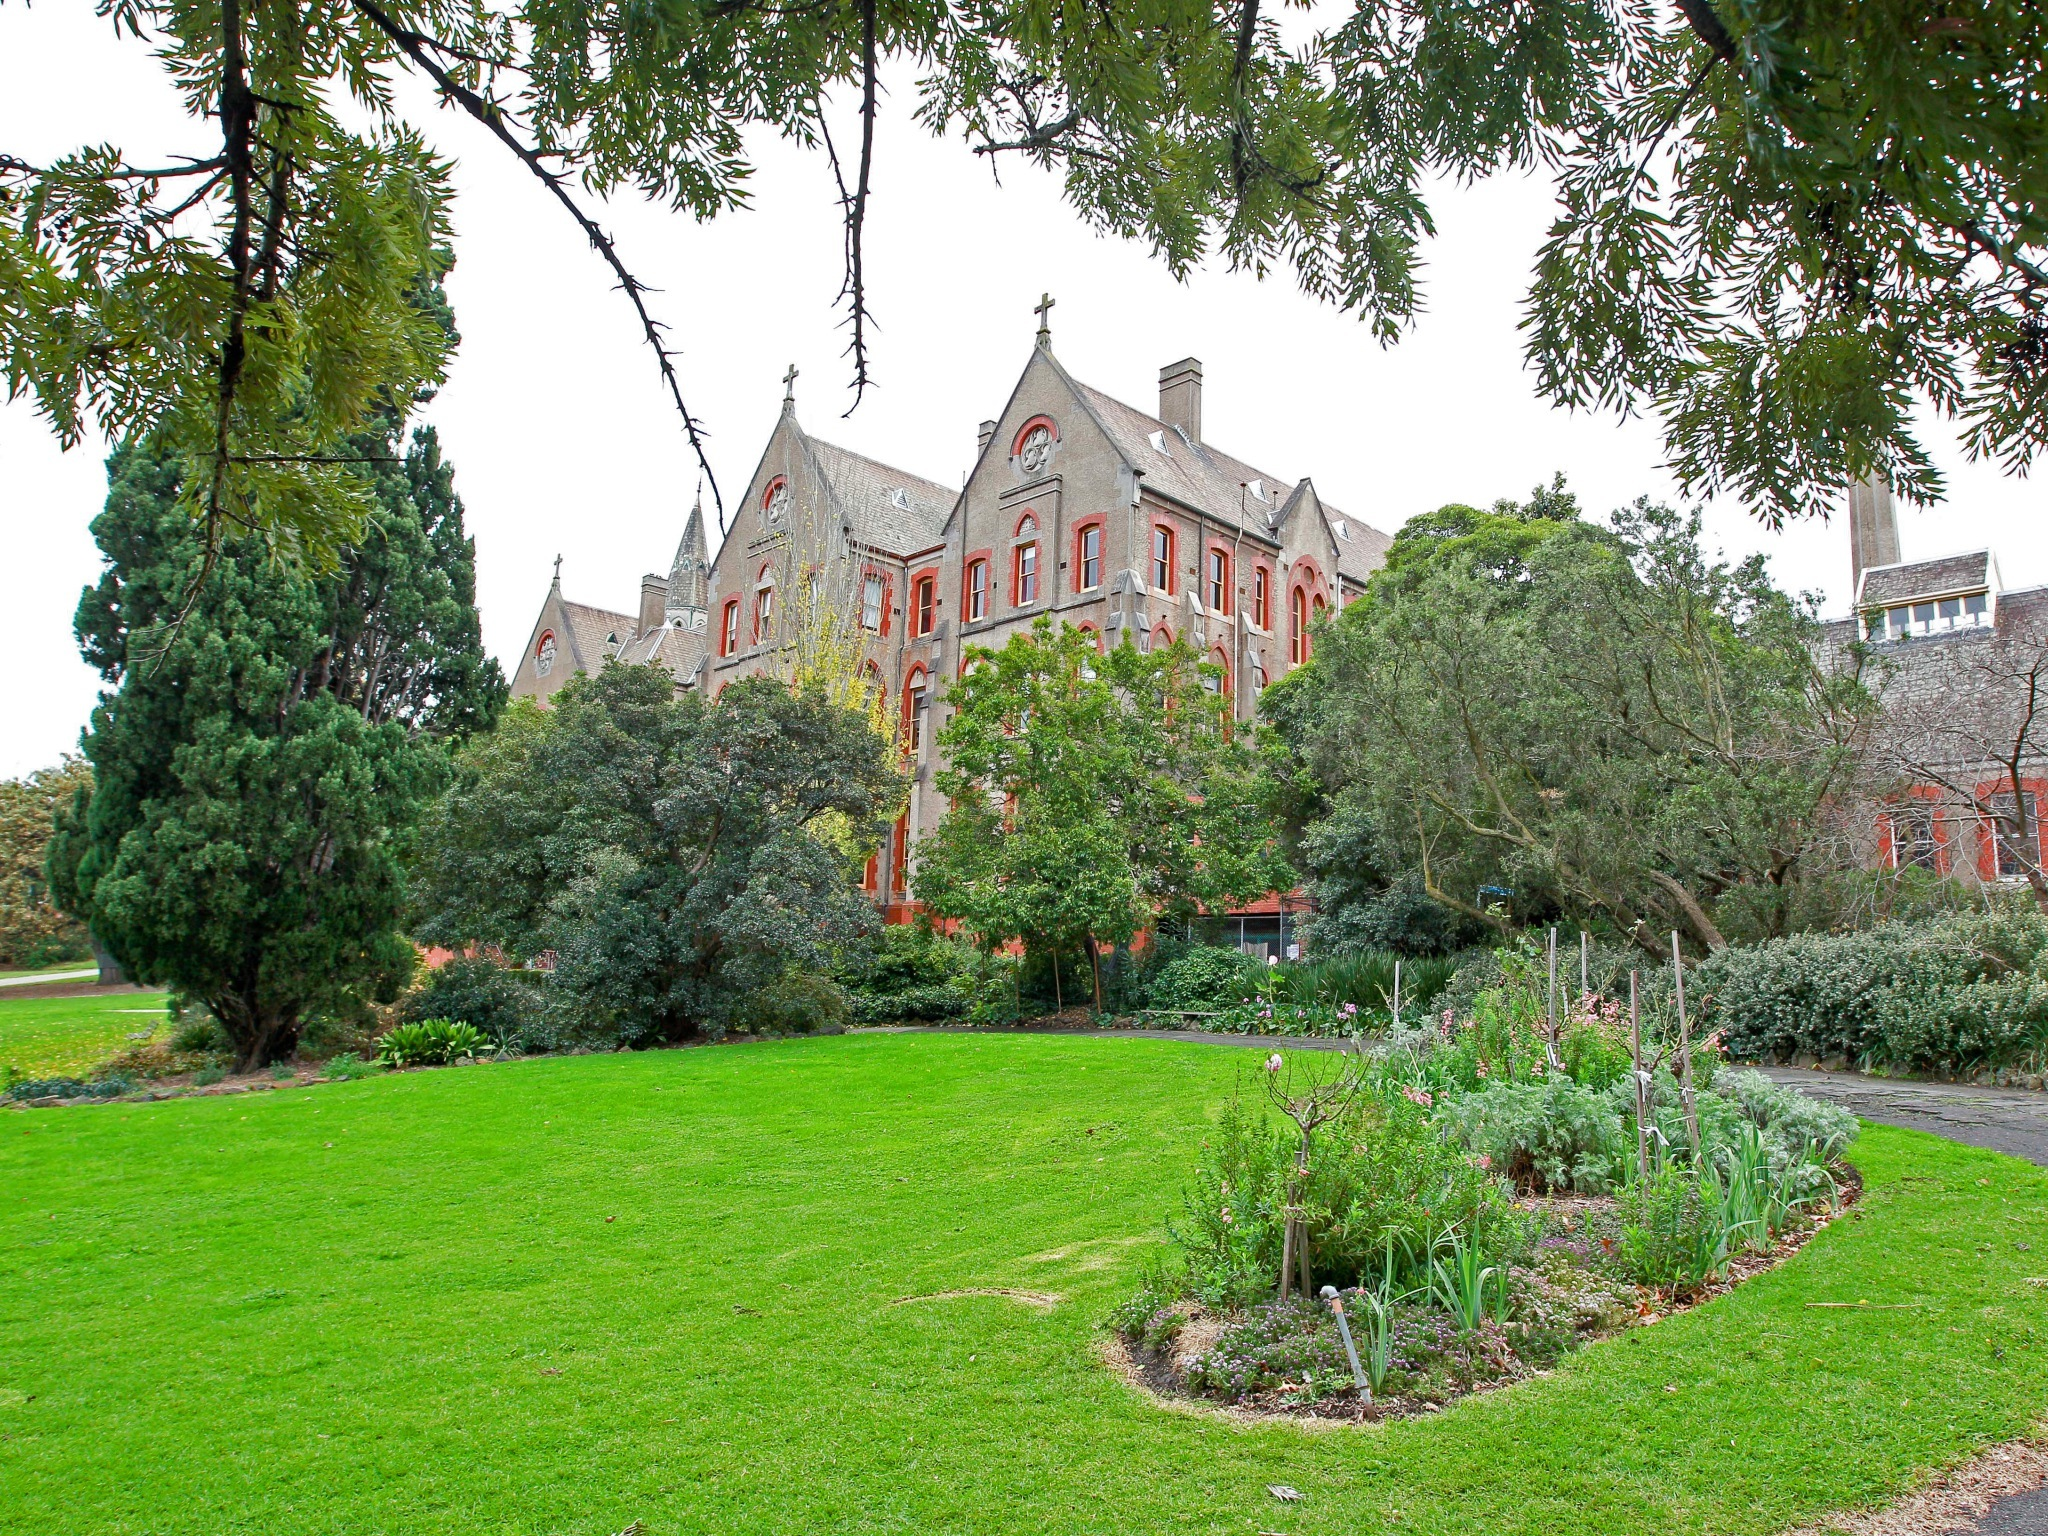 The Abbotsford Convent and Gardens by day